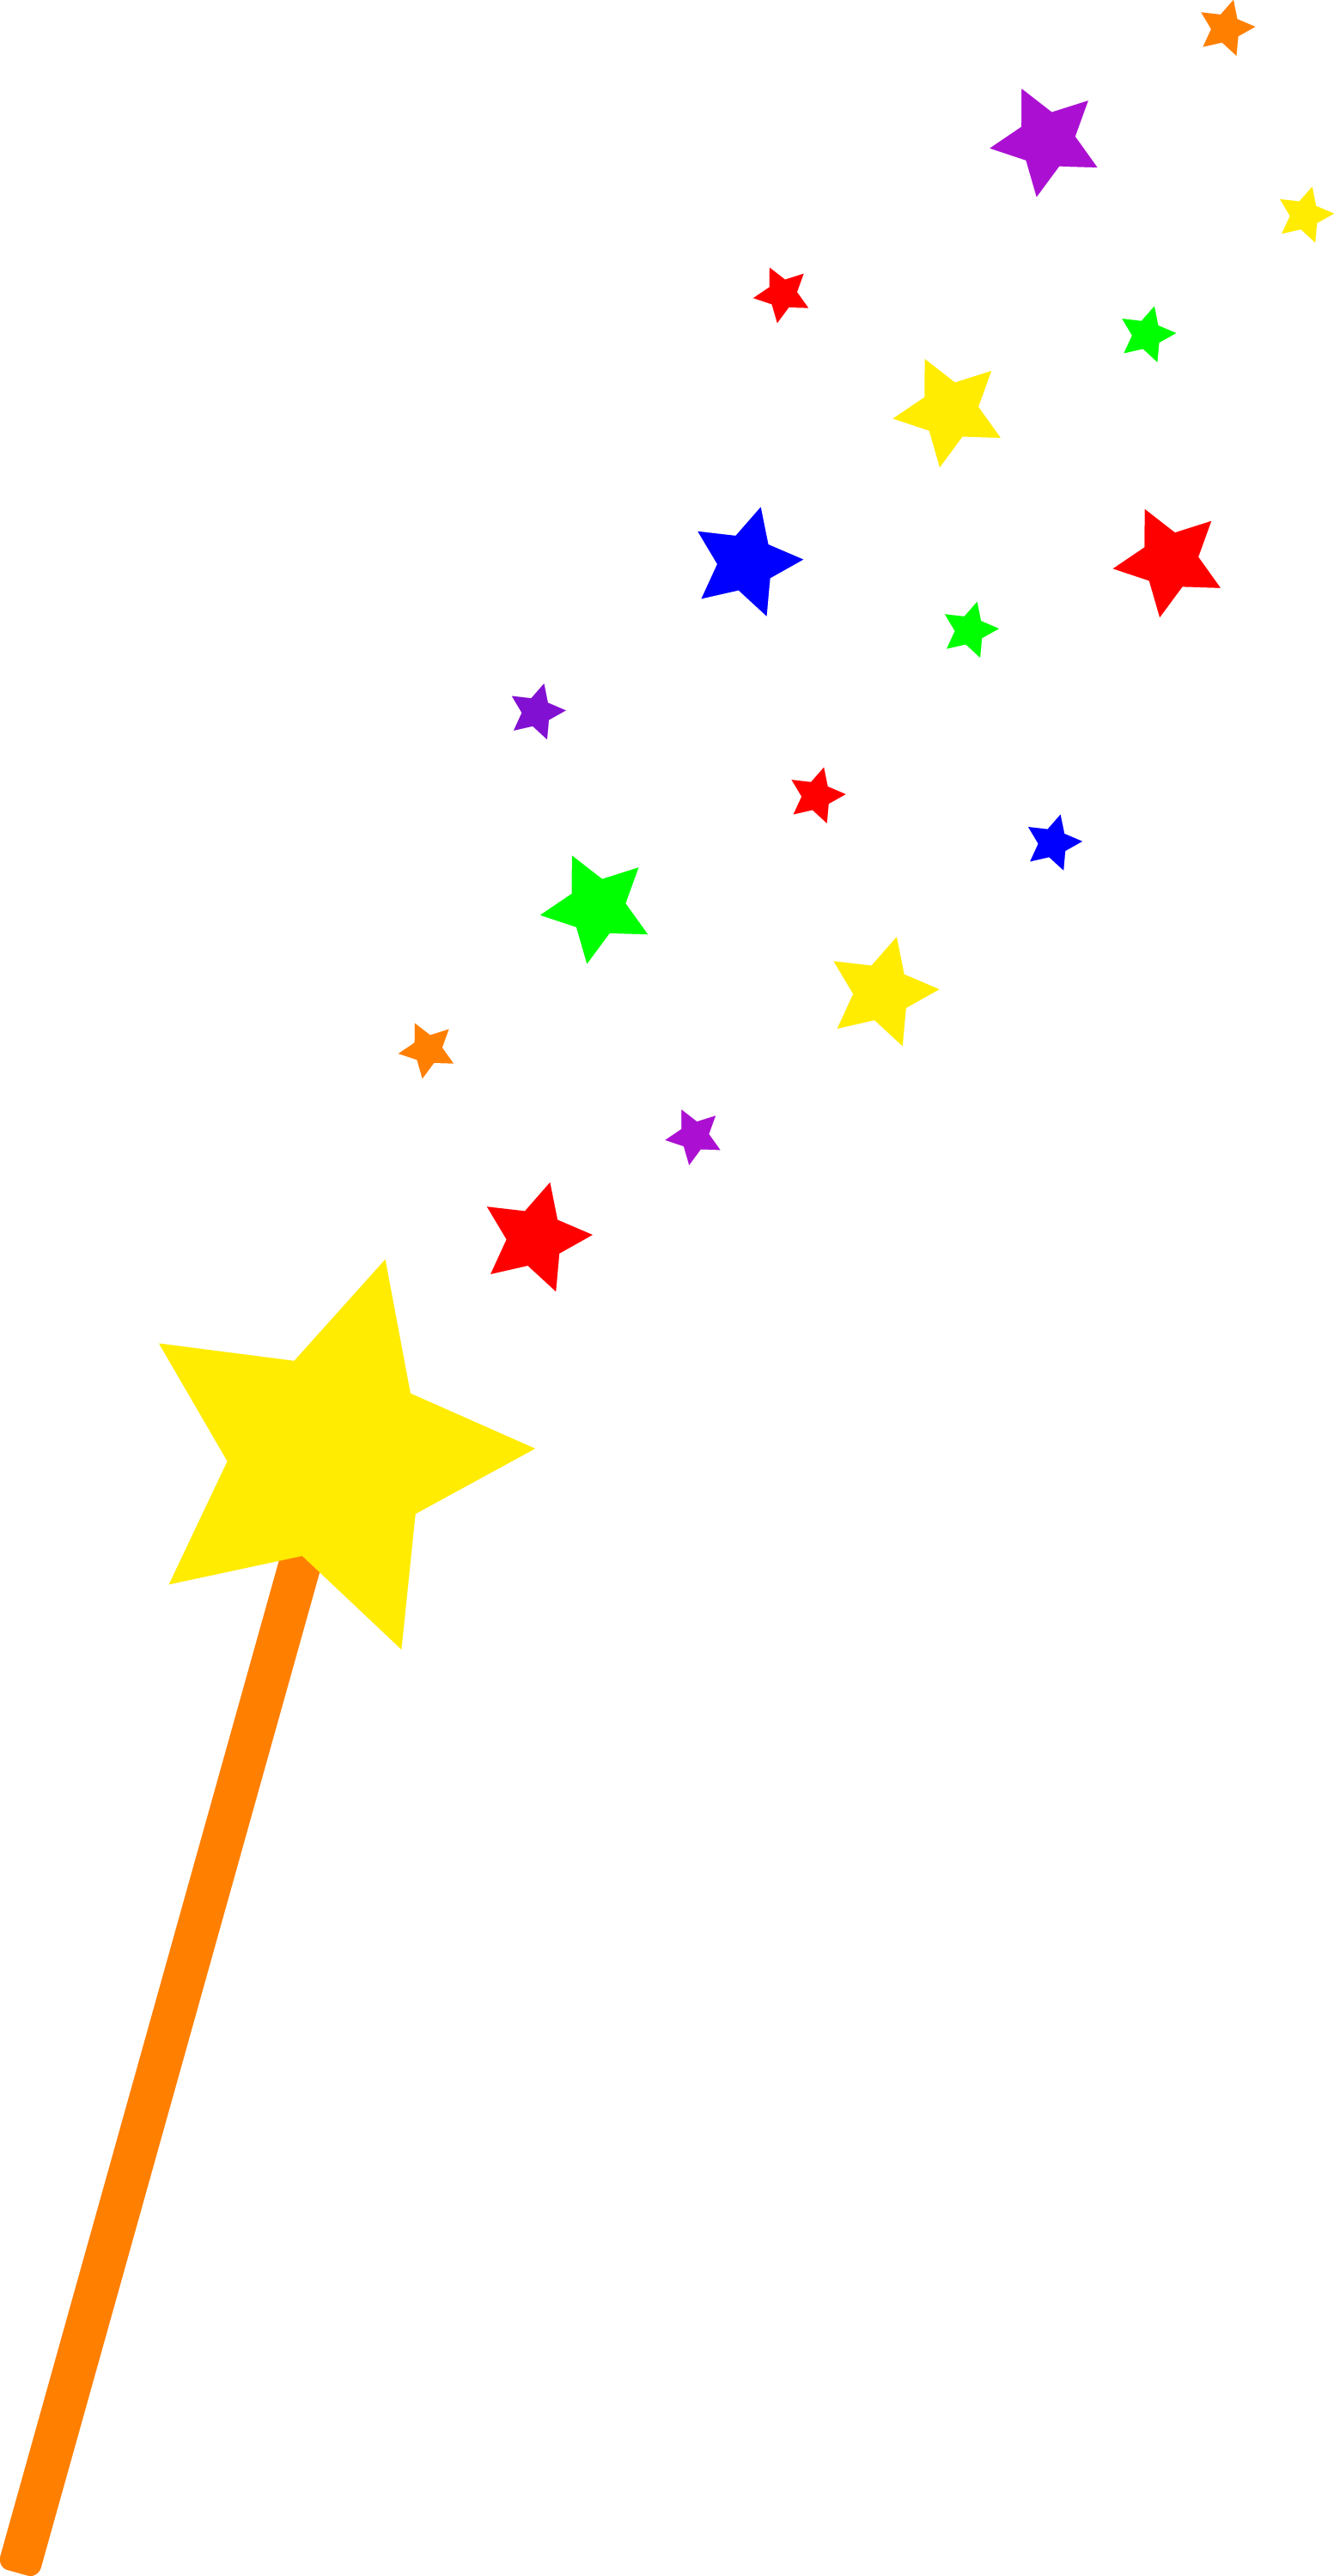 starry magic wand free clip art rh sweetclipart com magic wand clipart black and white magic hat and wand clip art